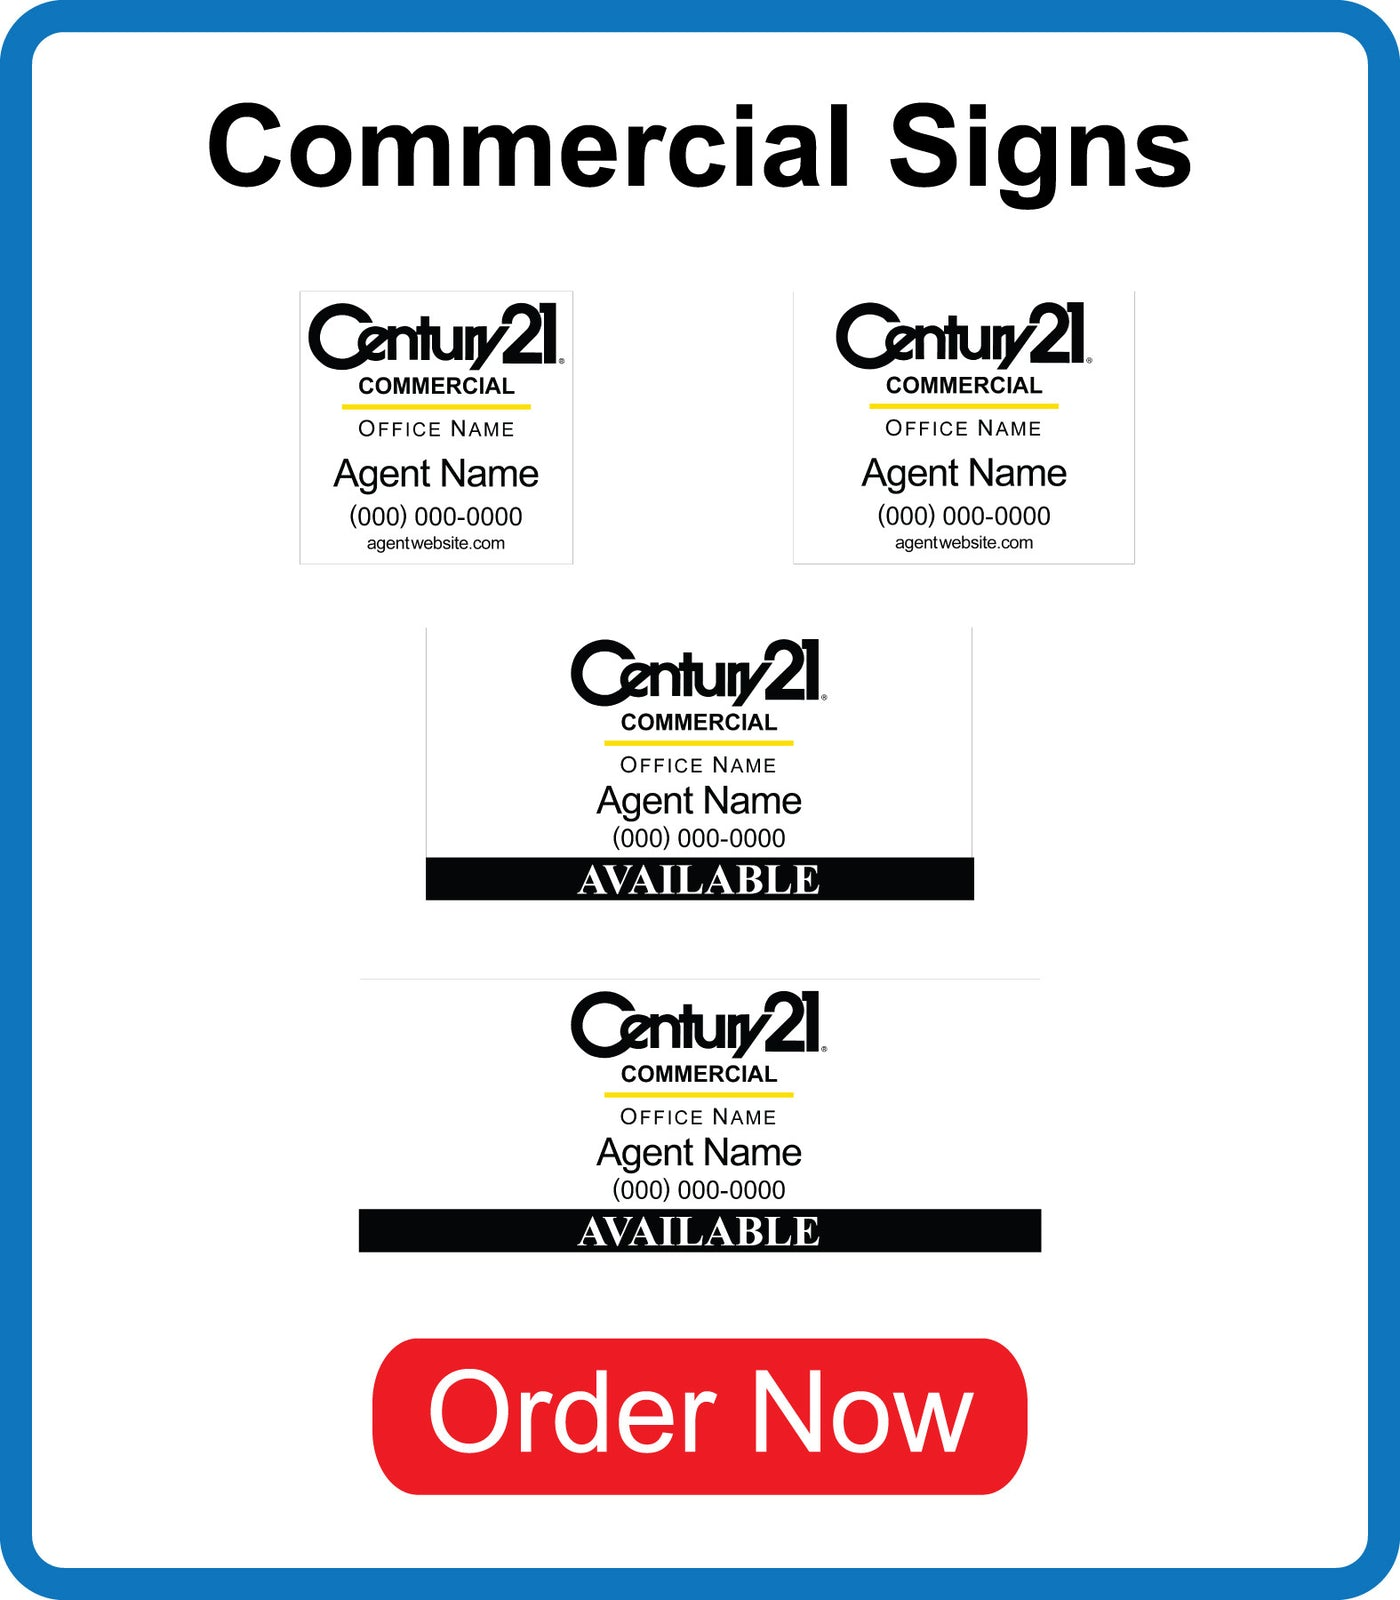 Century 21 Commercial Signs